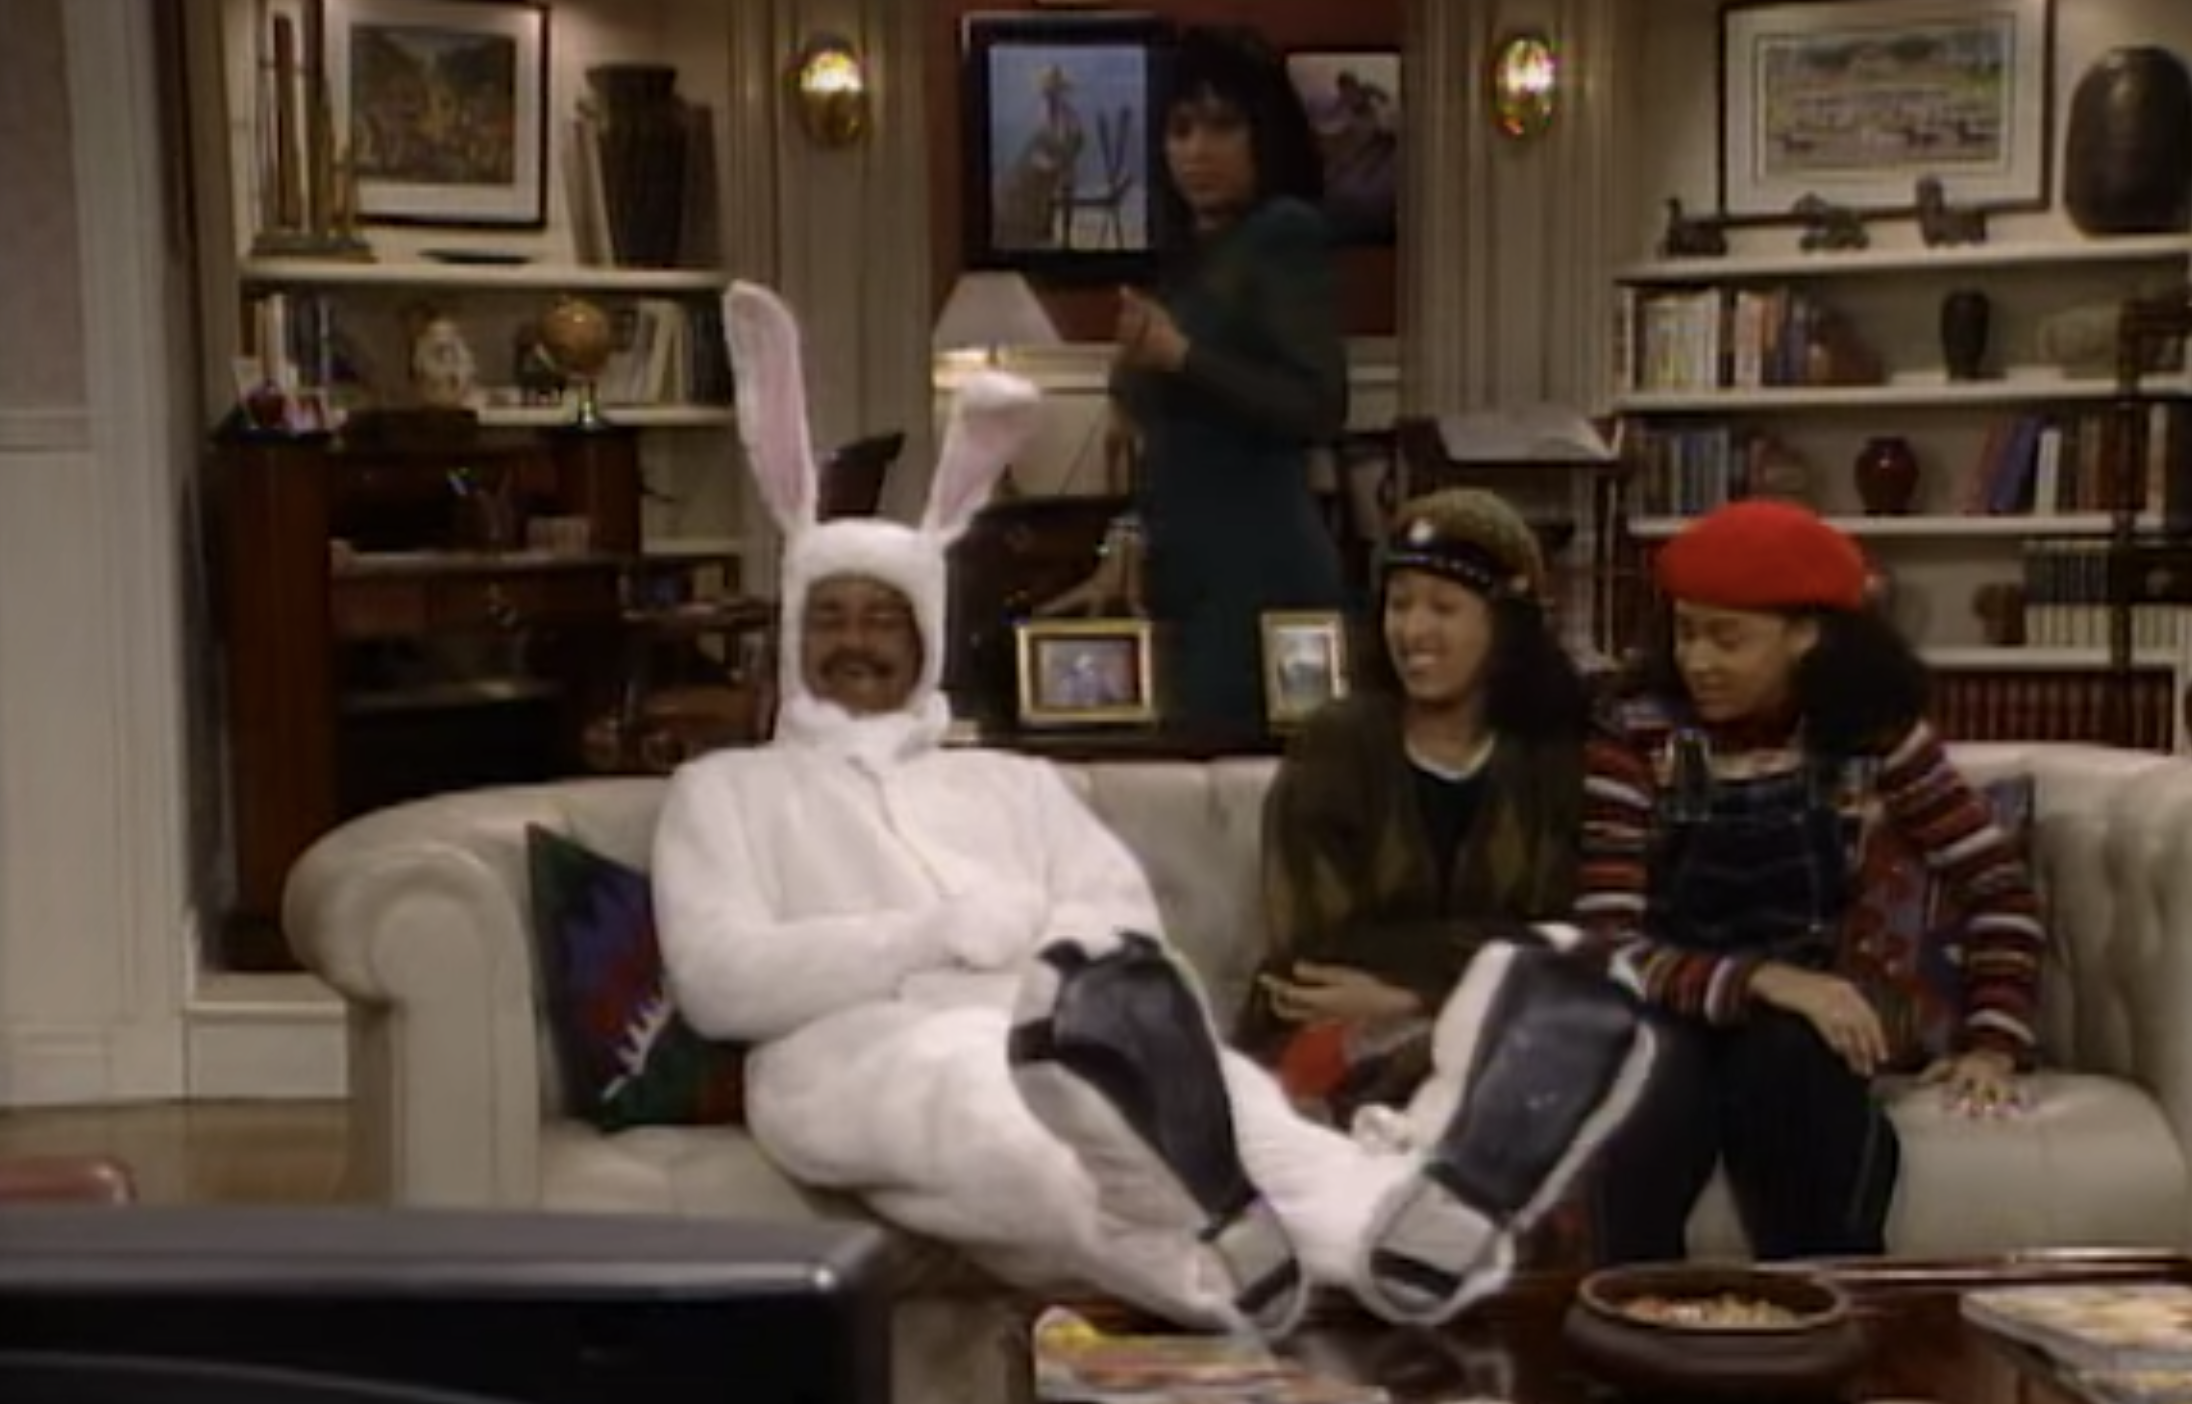 Ray sitting on the couch in a bunny costume next to Tia and Tamera